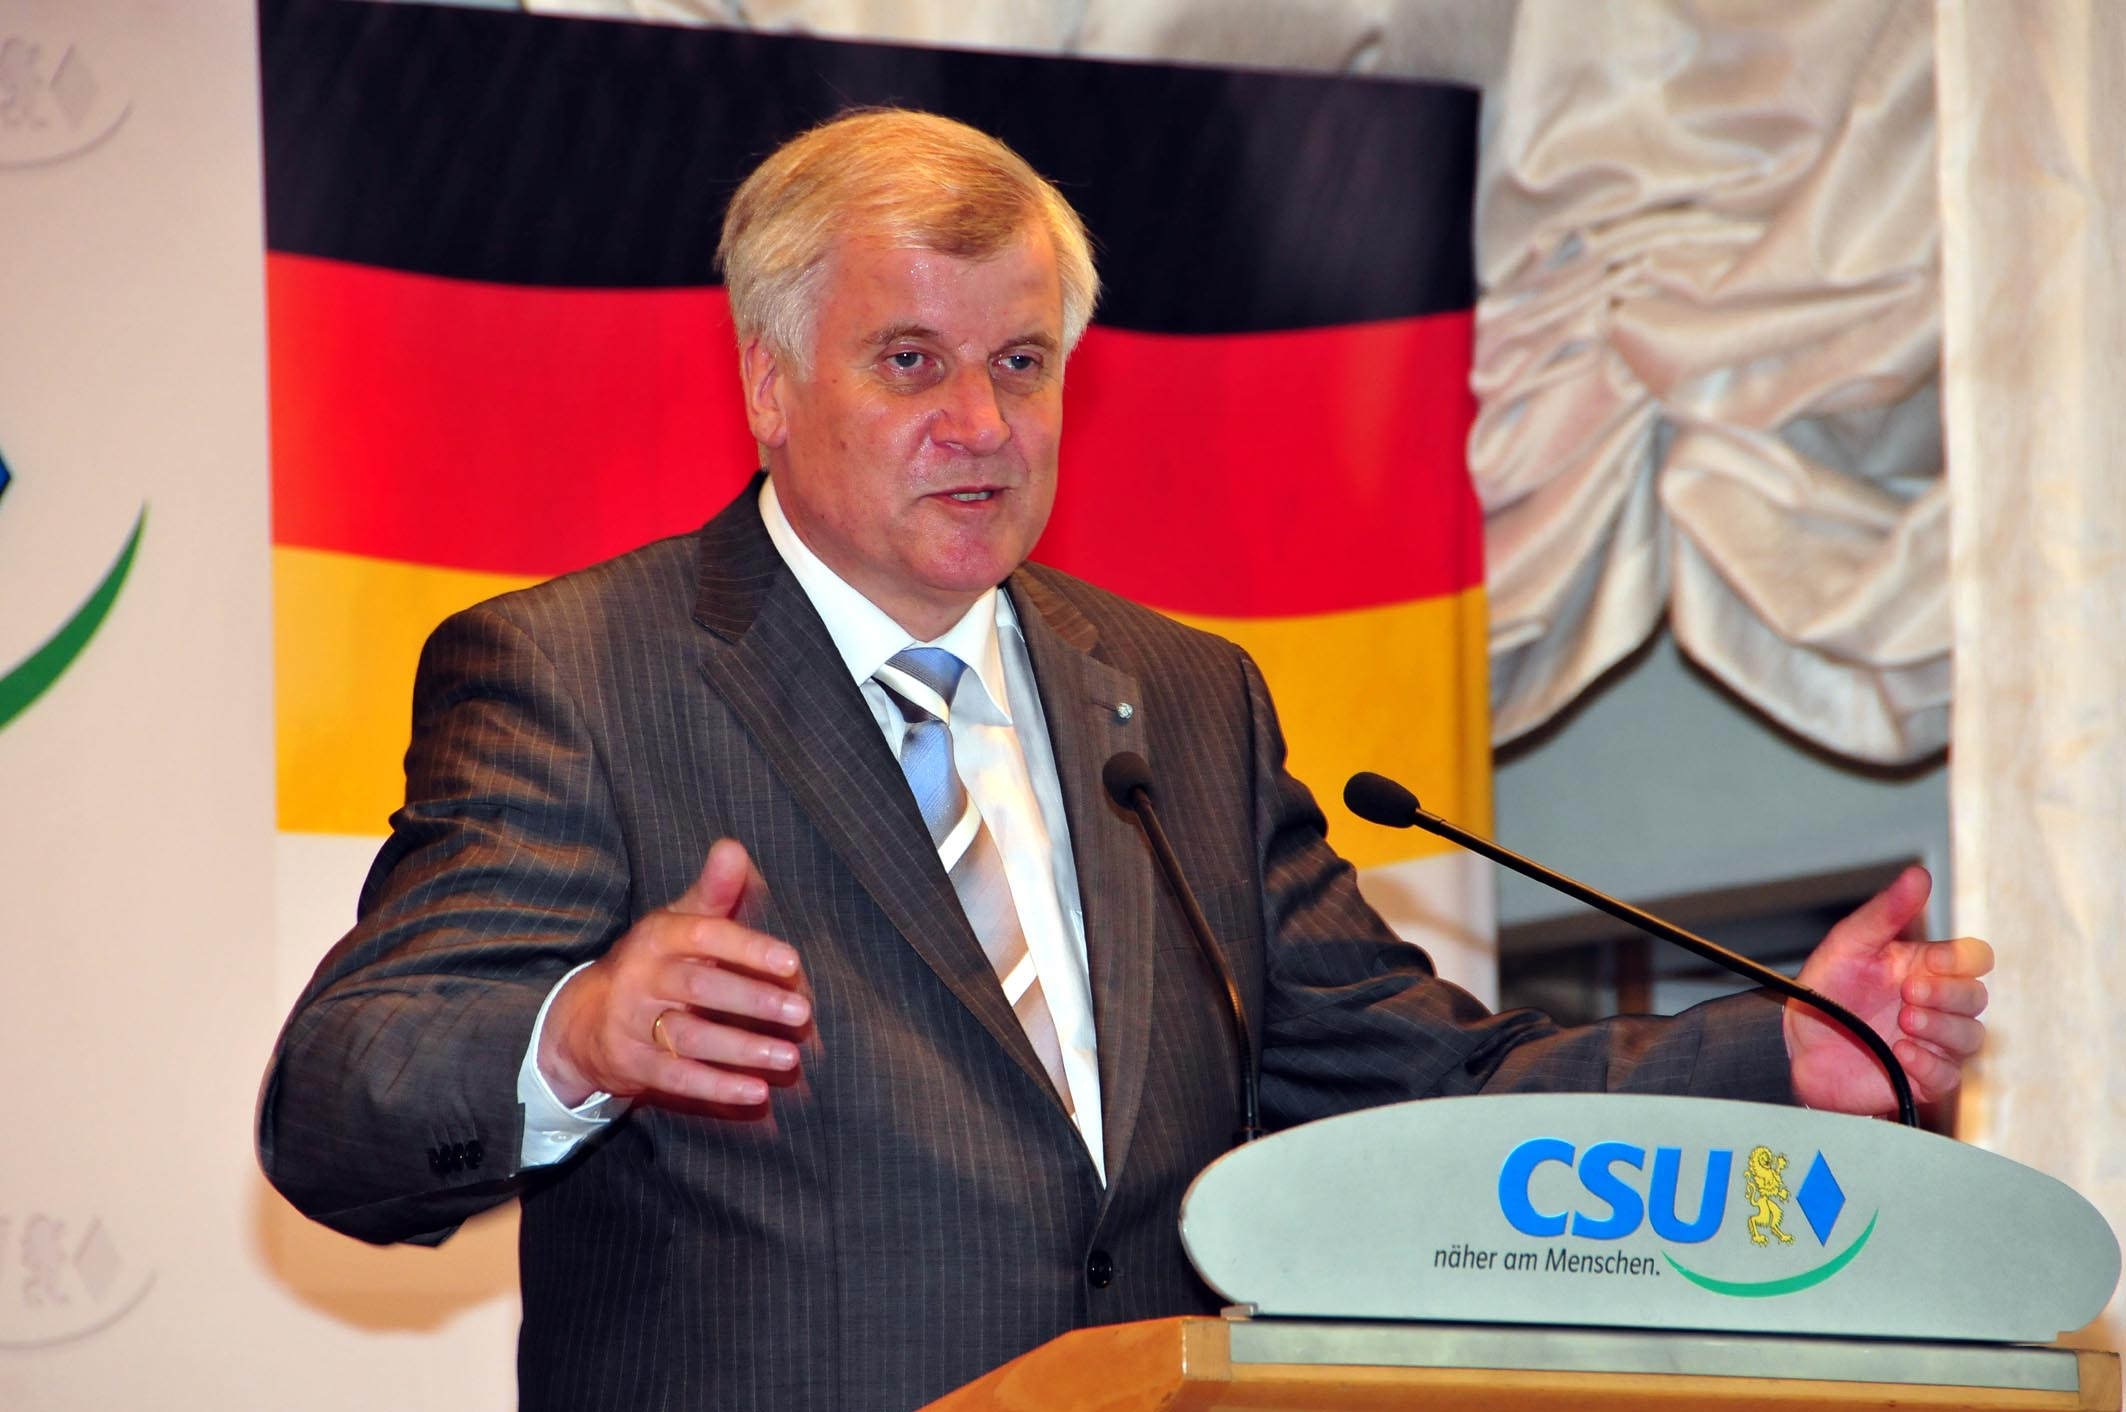 090821 Seehofer in Warmensteinach jpg. (115)